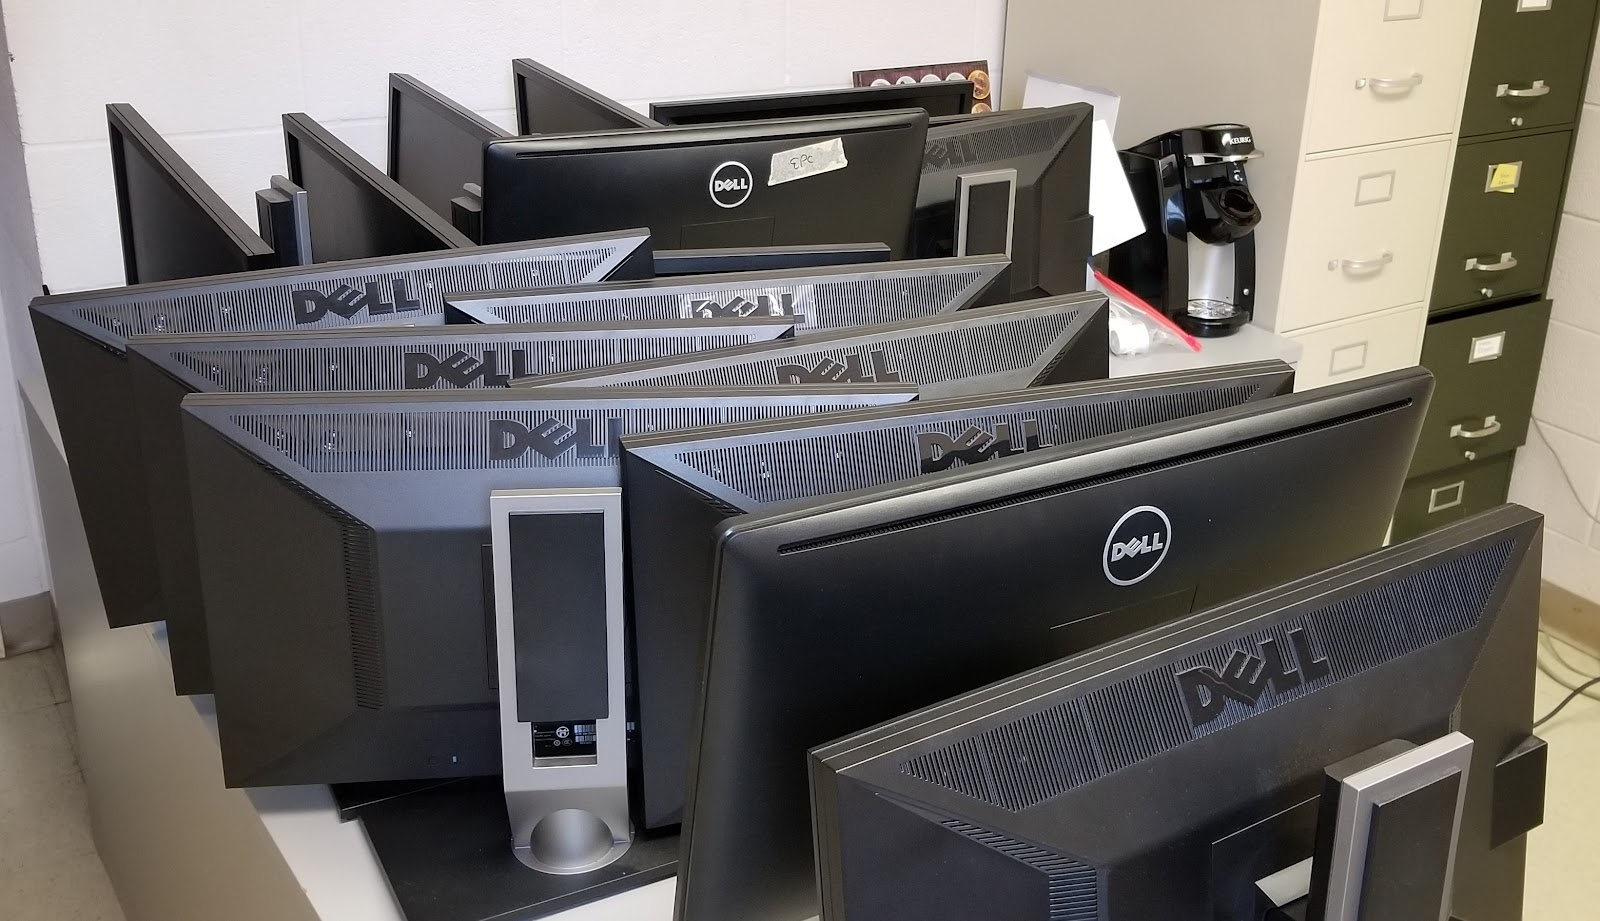 Image: more than a dozen computer monitors, waiting to be packed and shipped back to Princeton